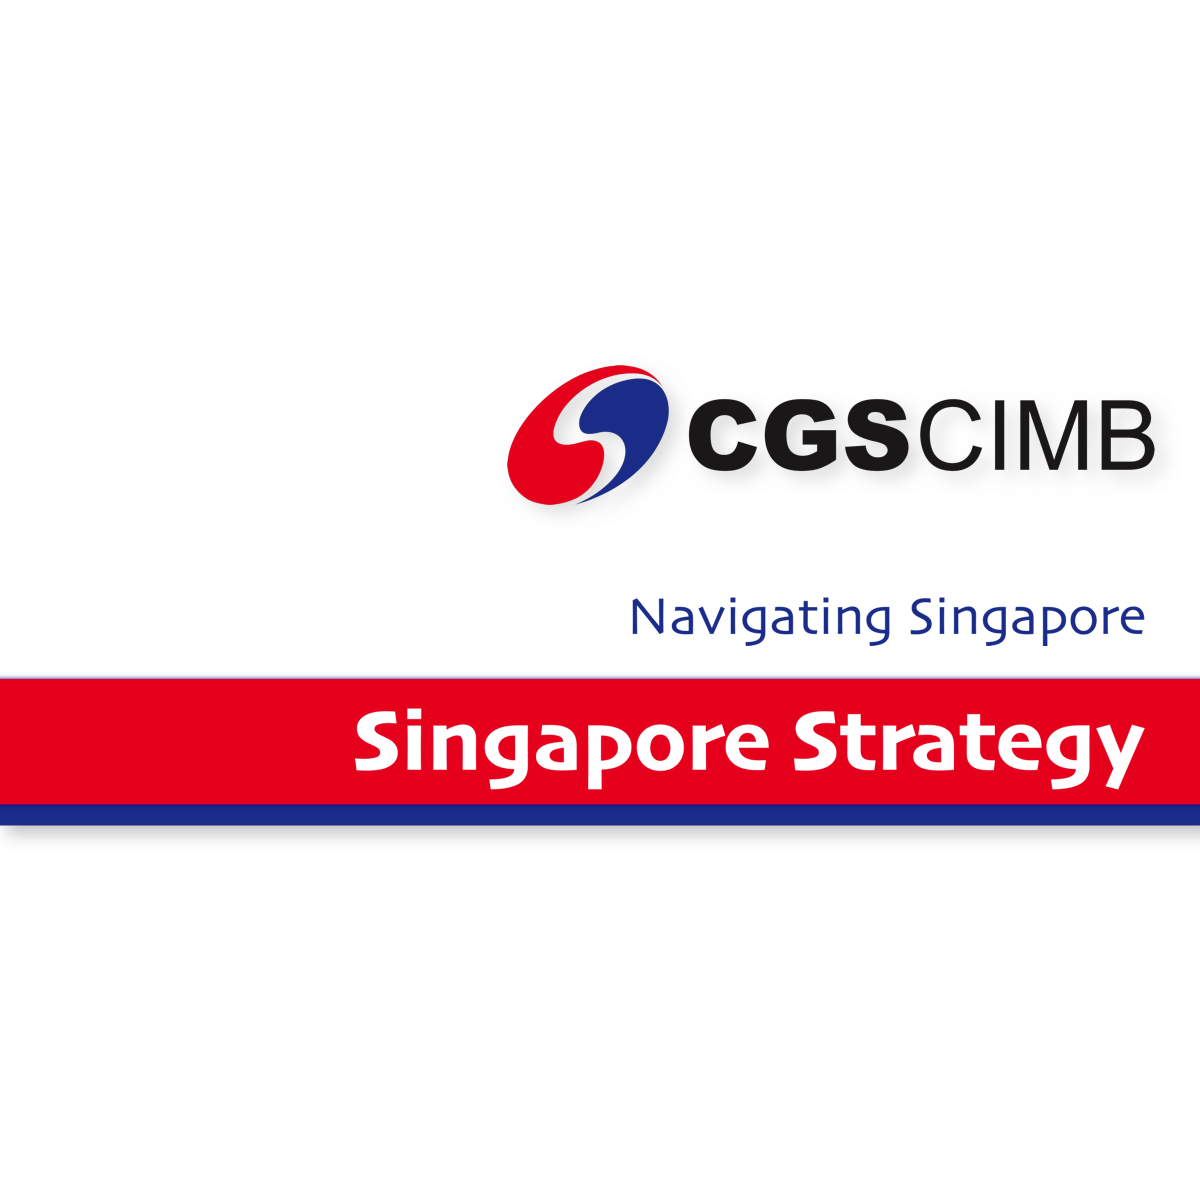 Singapore Strategy - CGS-CIMB Research | SGinvestors.io